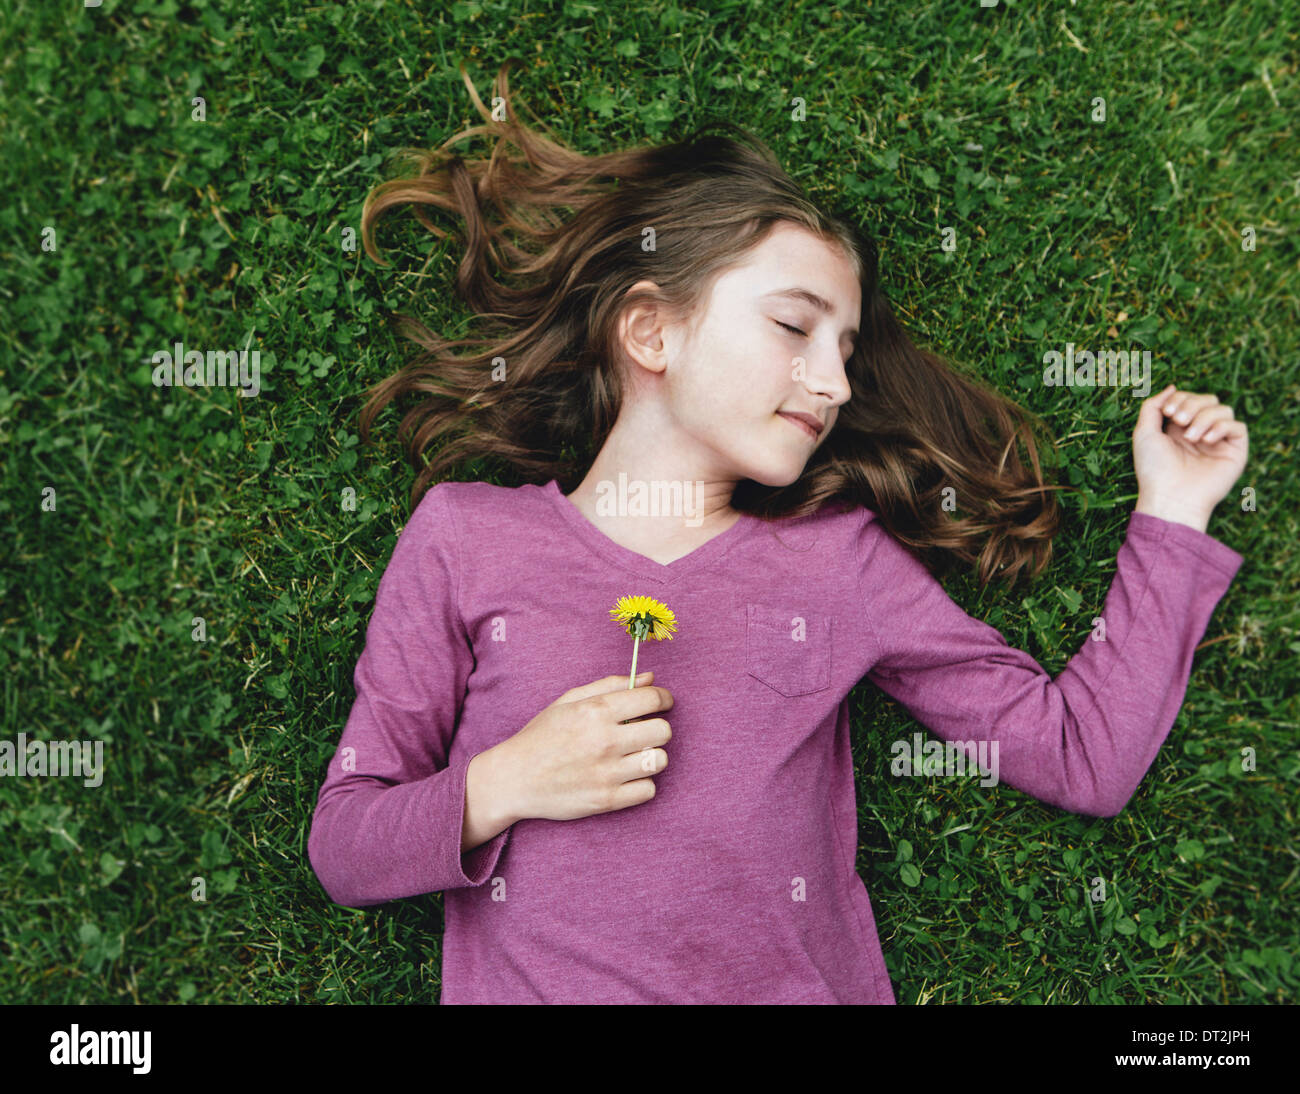 Cool A Ten Year Old Girl Lying On The Grass With Her Eyes Closed Hairstyles For Women Draintrainus